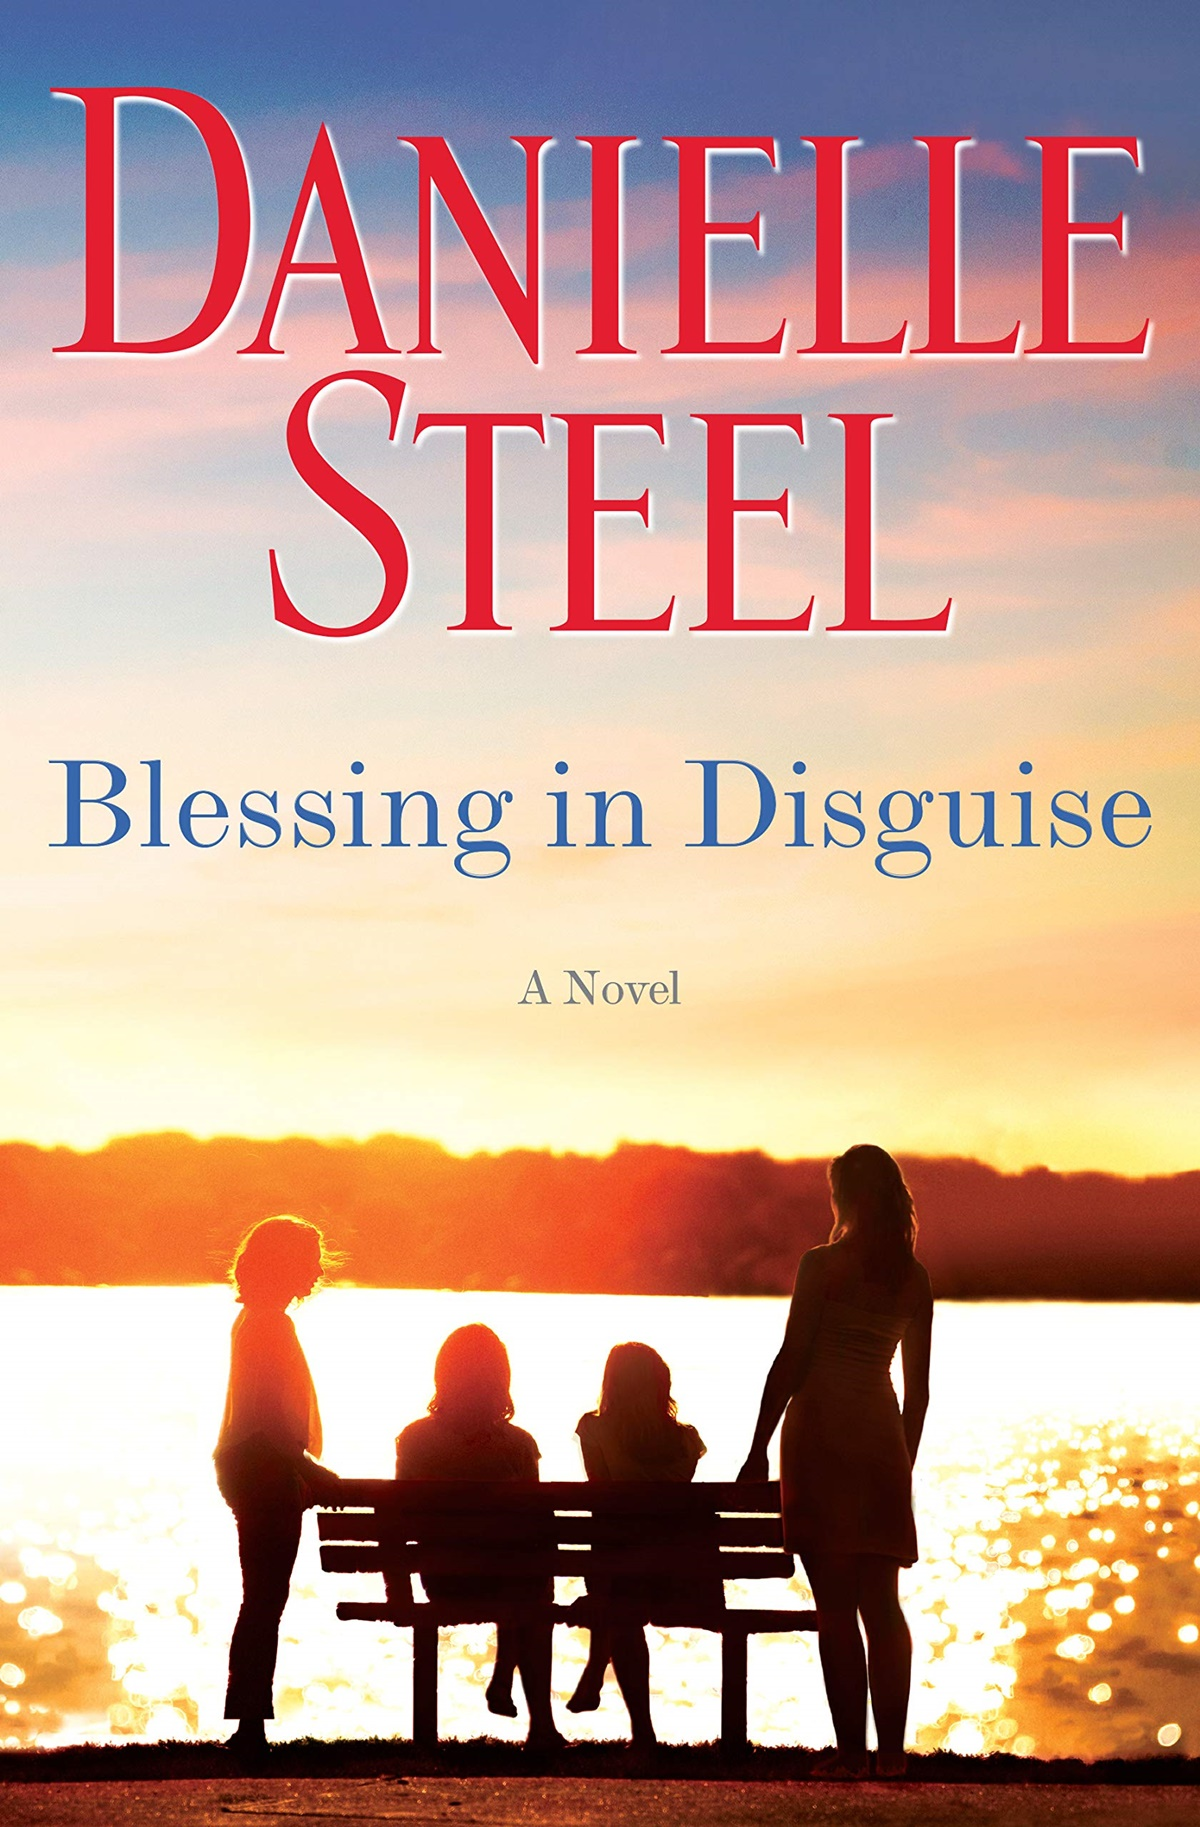 Danielle Steel Books, cover of Blessings in Disguise by Danielle Steel, books